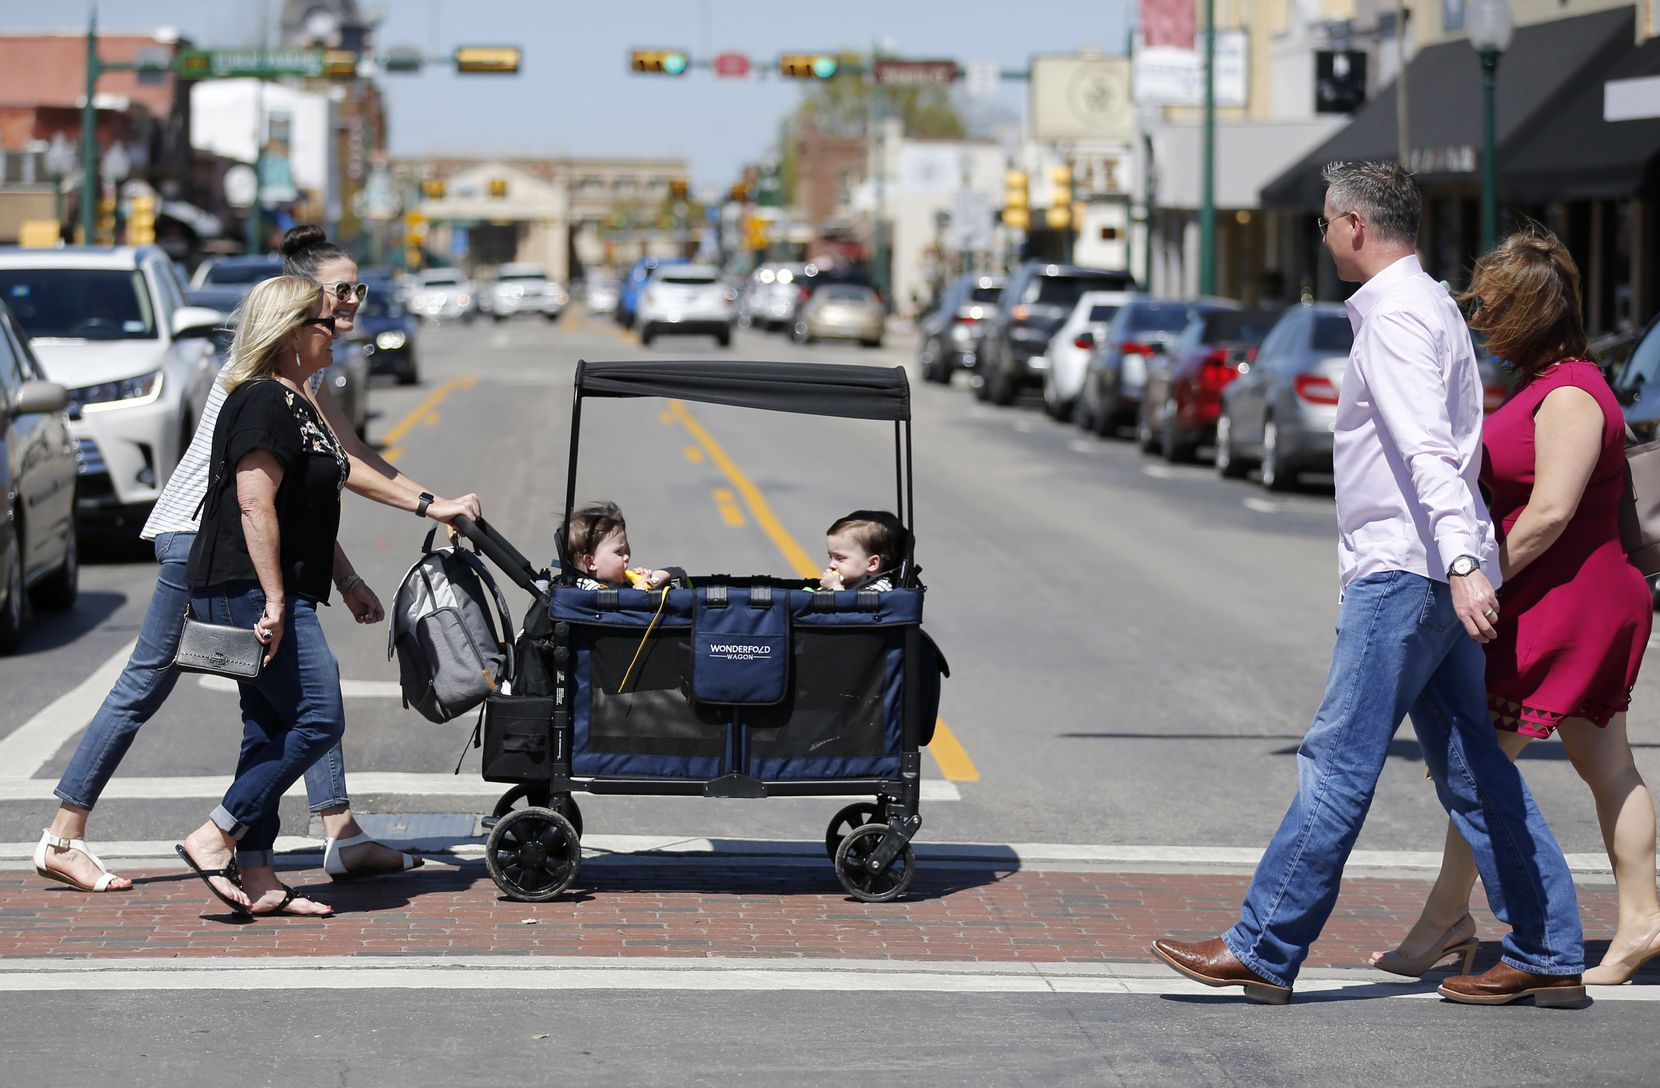 People watch as Celia Moorman of Frisco walks with Jenny Marr as she pushes her quadruplets Hudson, Henry, Hardy, and Harrison Marr on Friday, March 26, 2021, in Grapevine, Texas.